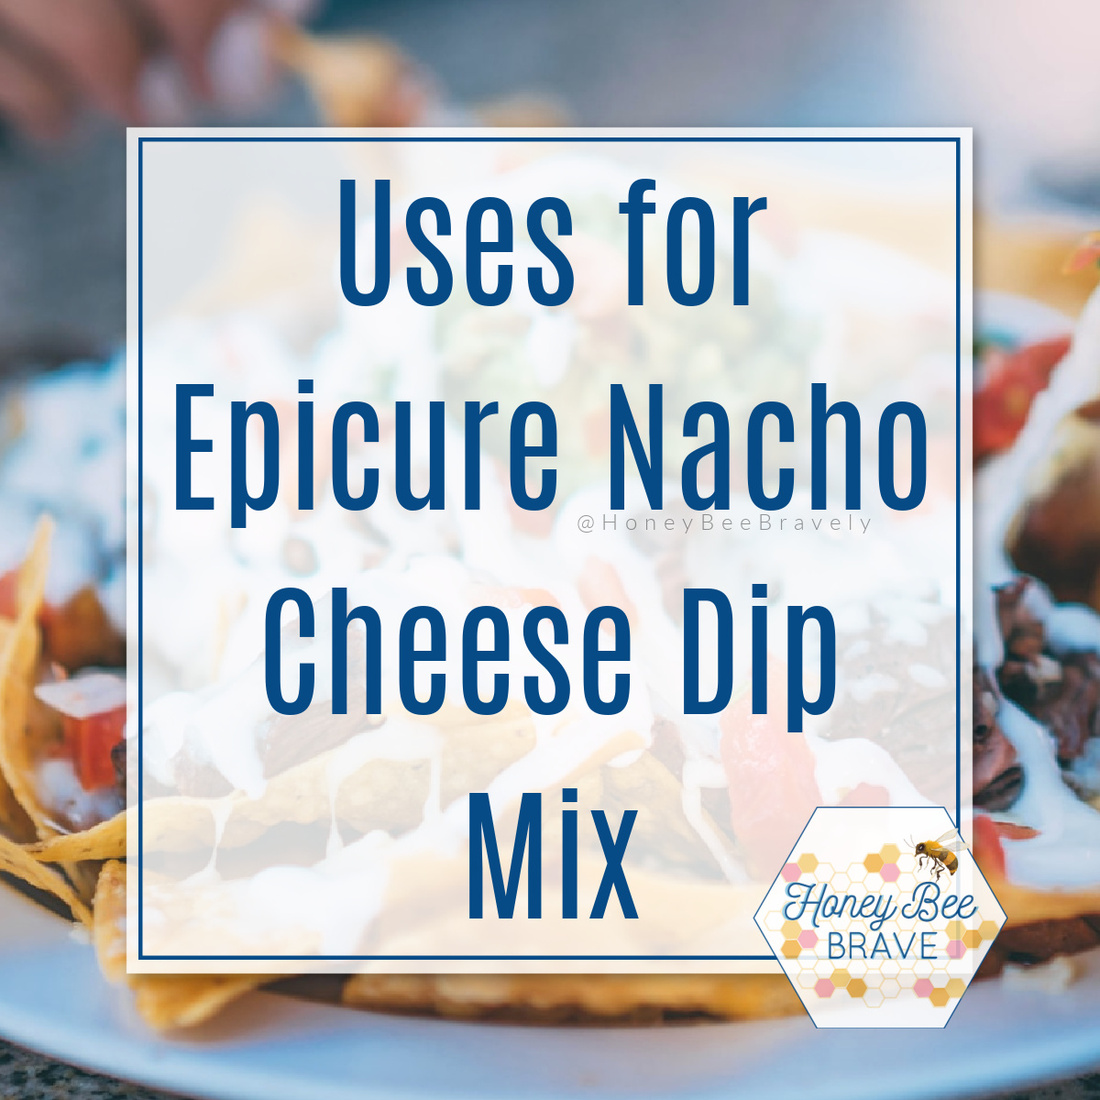 Nacho Average Dip Mix Epicure Nacho Dip Mix Recipes And Uses Direct Sales Party Plan And Network Marketing Companies Member Article By Megan Whitmore